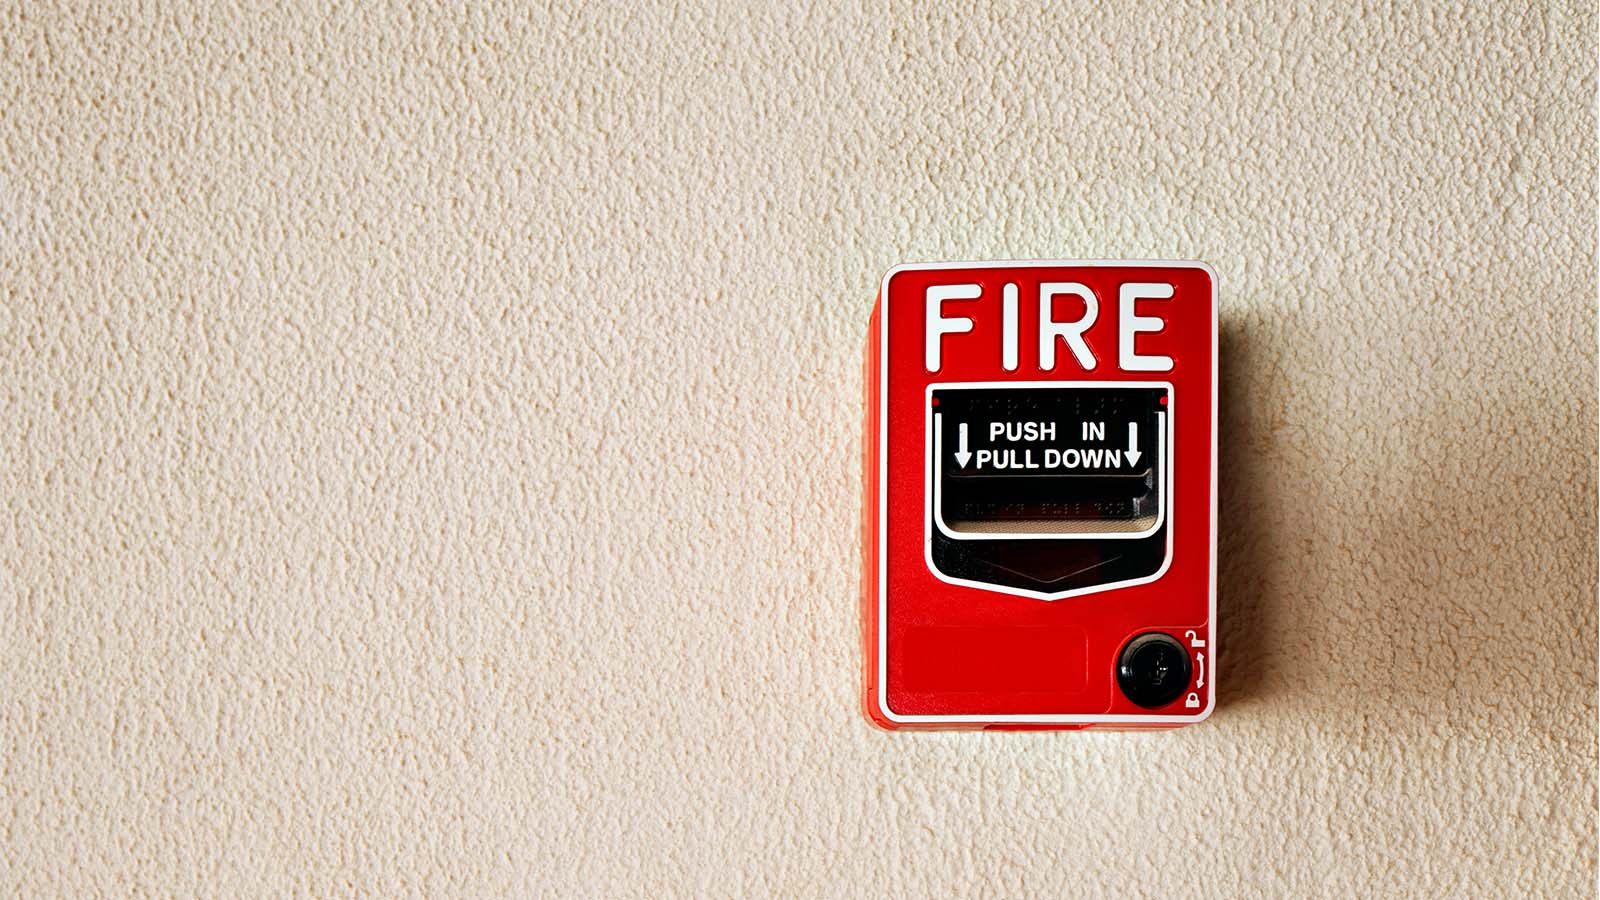 Watchdog_Security_Smoke_Detector_Slide_8